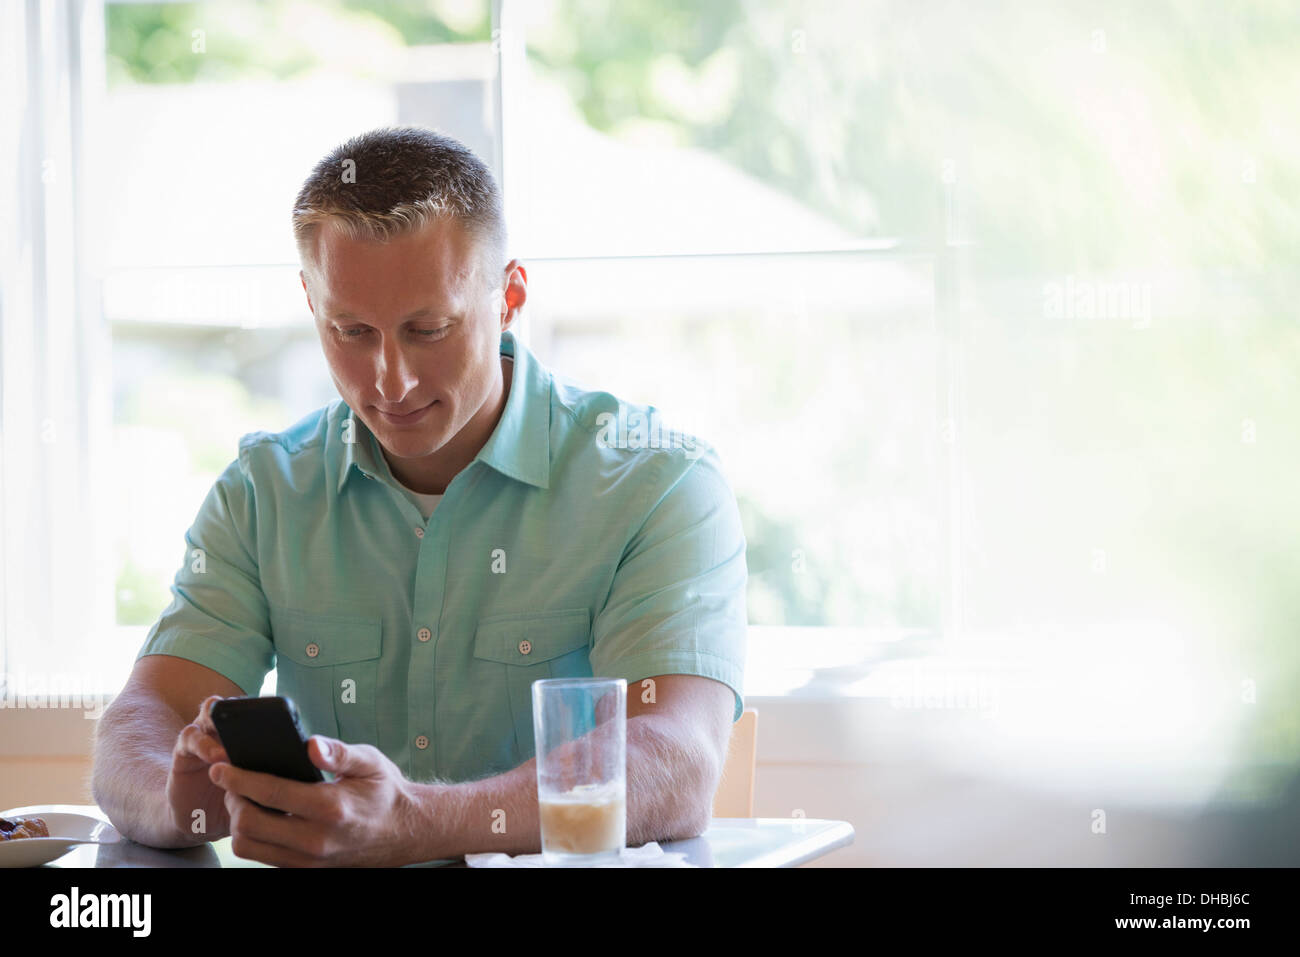 A man with short cropped hair sitting at a cafe table, using a smart phone. - Stock Image